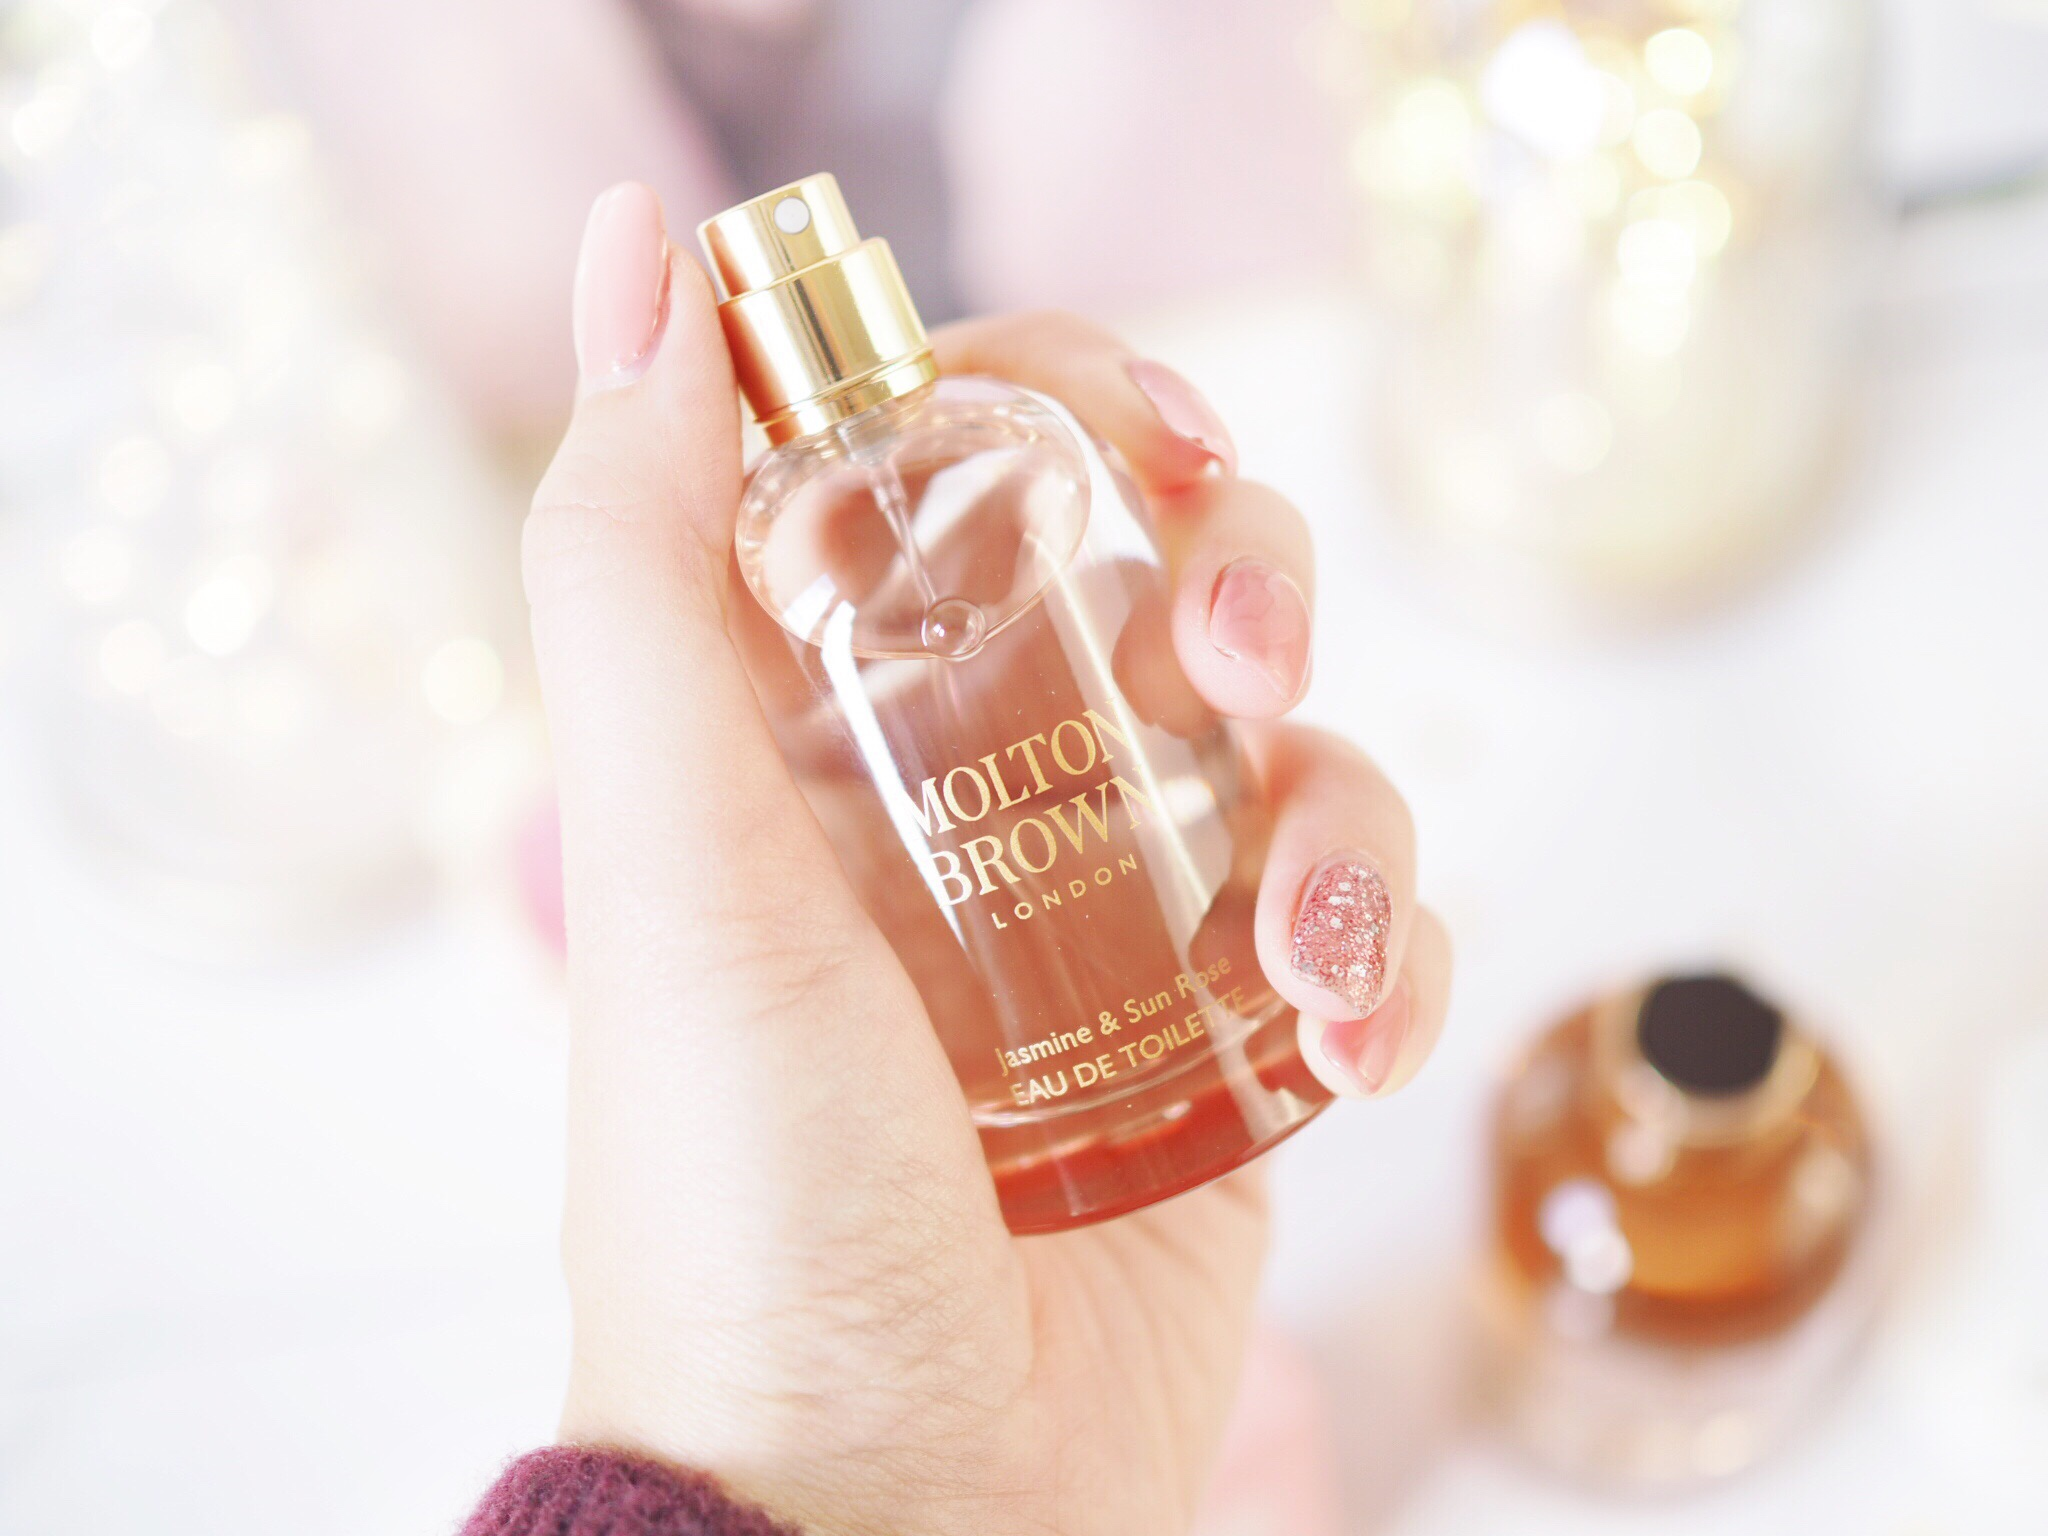 Meet The New Molton Brown Fragrance Jasmine & Sun Rose